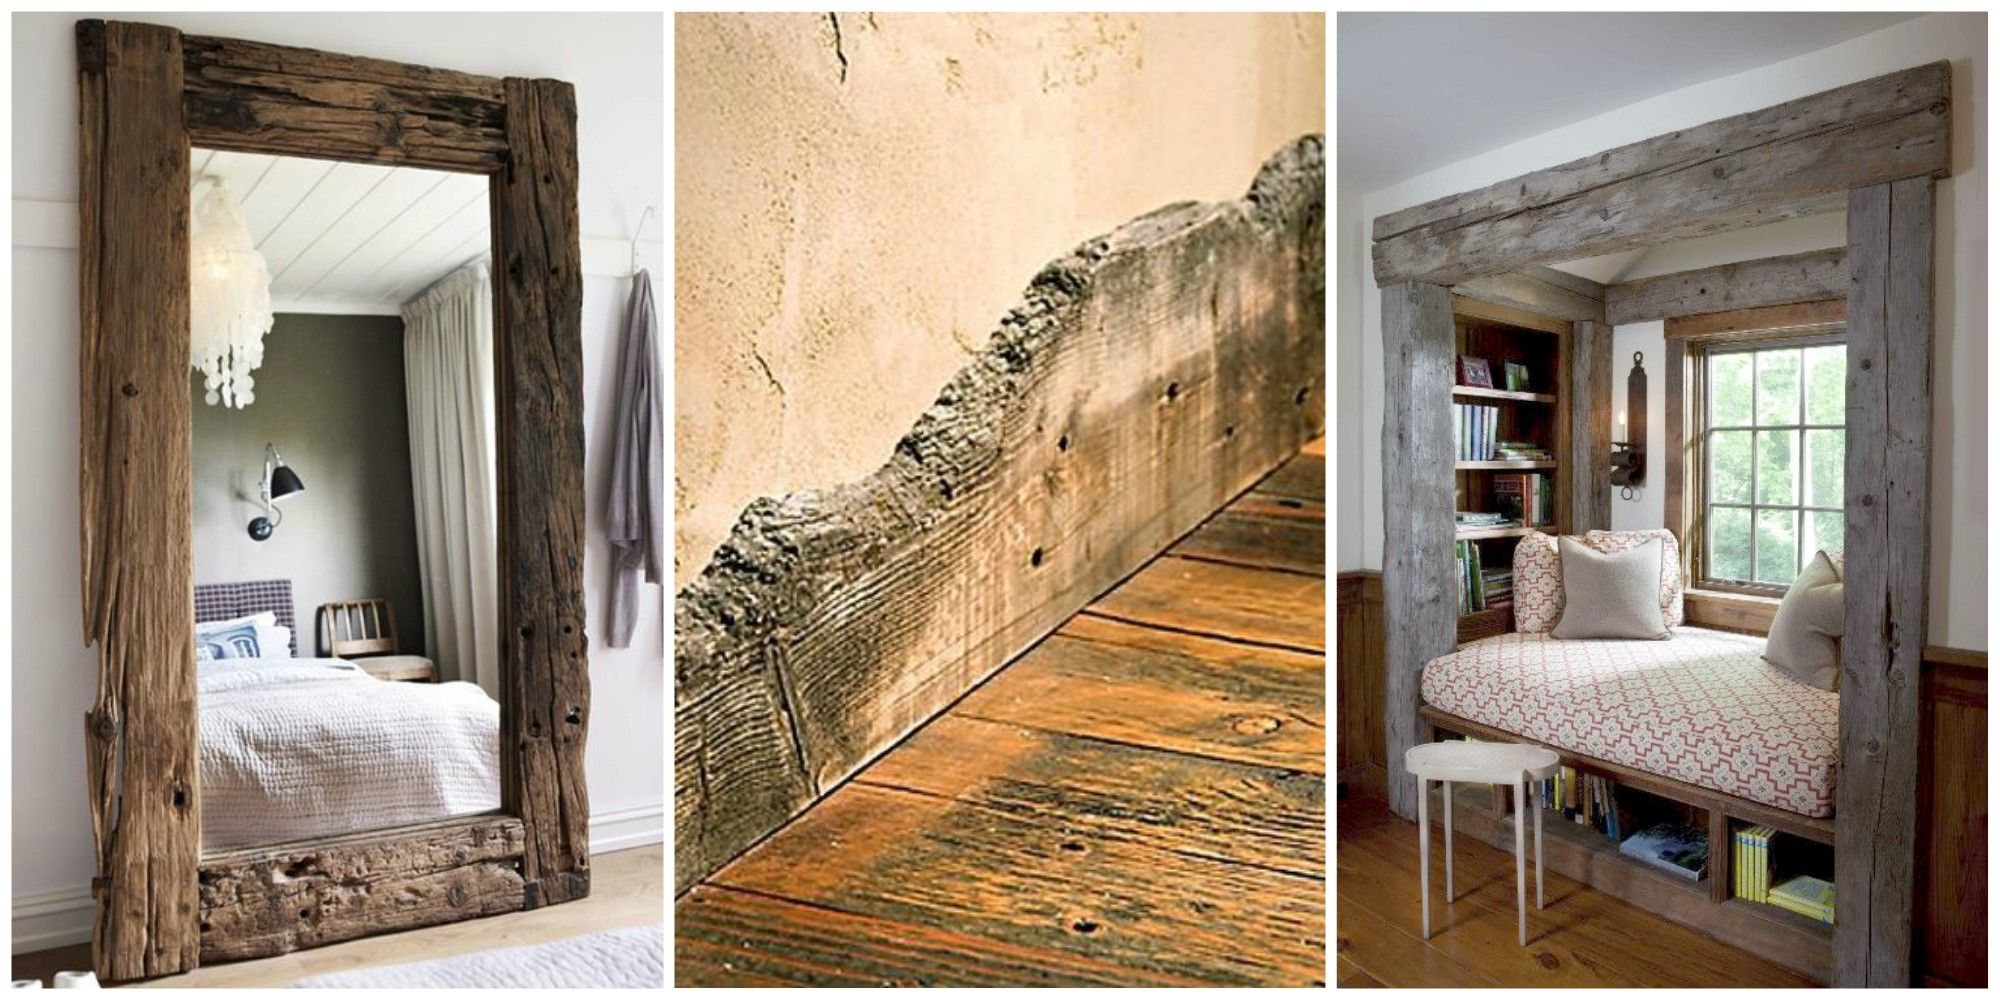 Reclaimed Wood Trim and Molding - Reclaimed Wood Design and Decorating Ideas